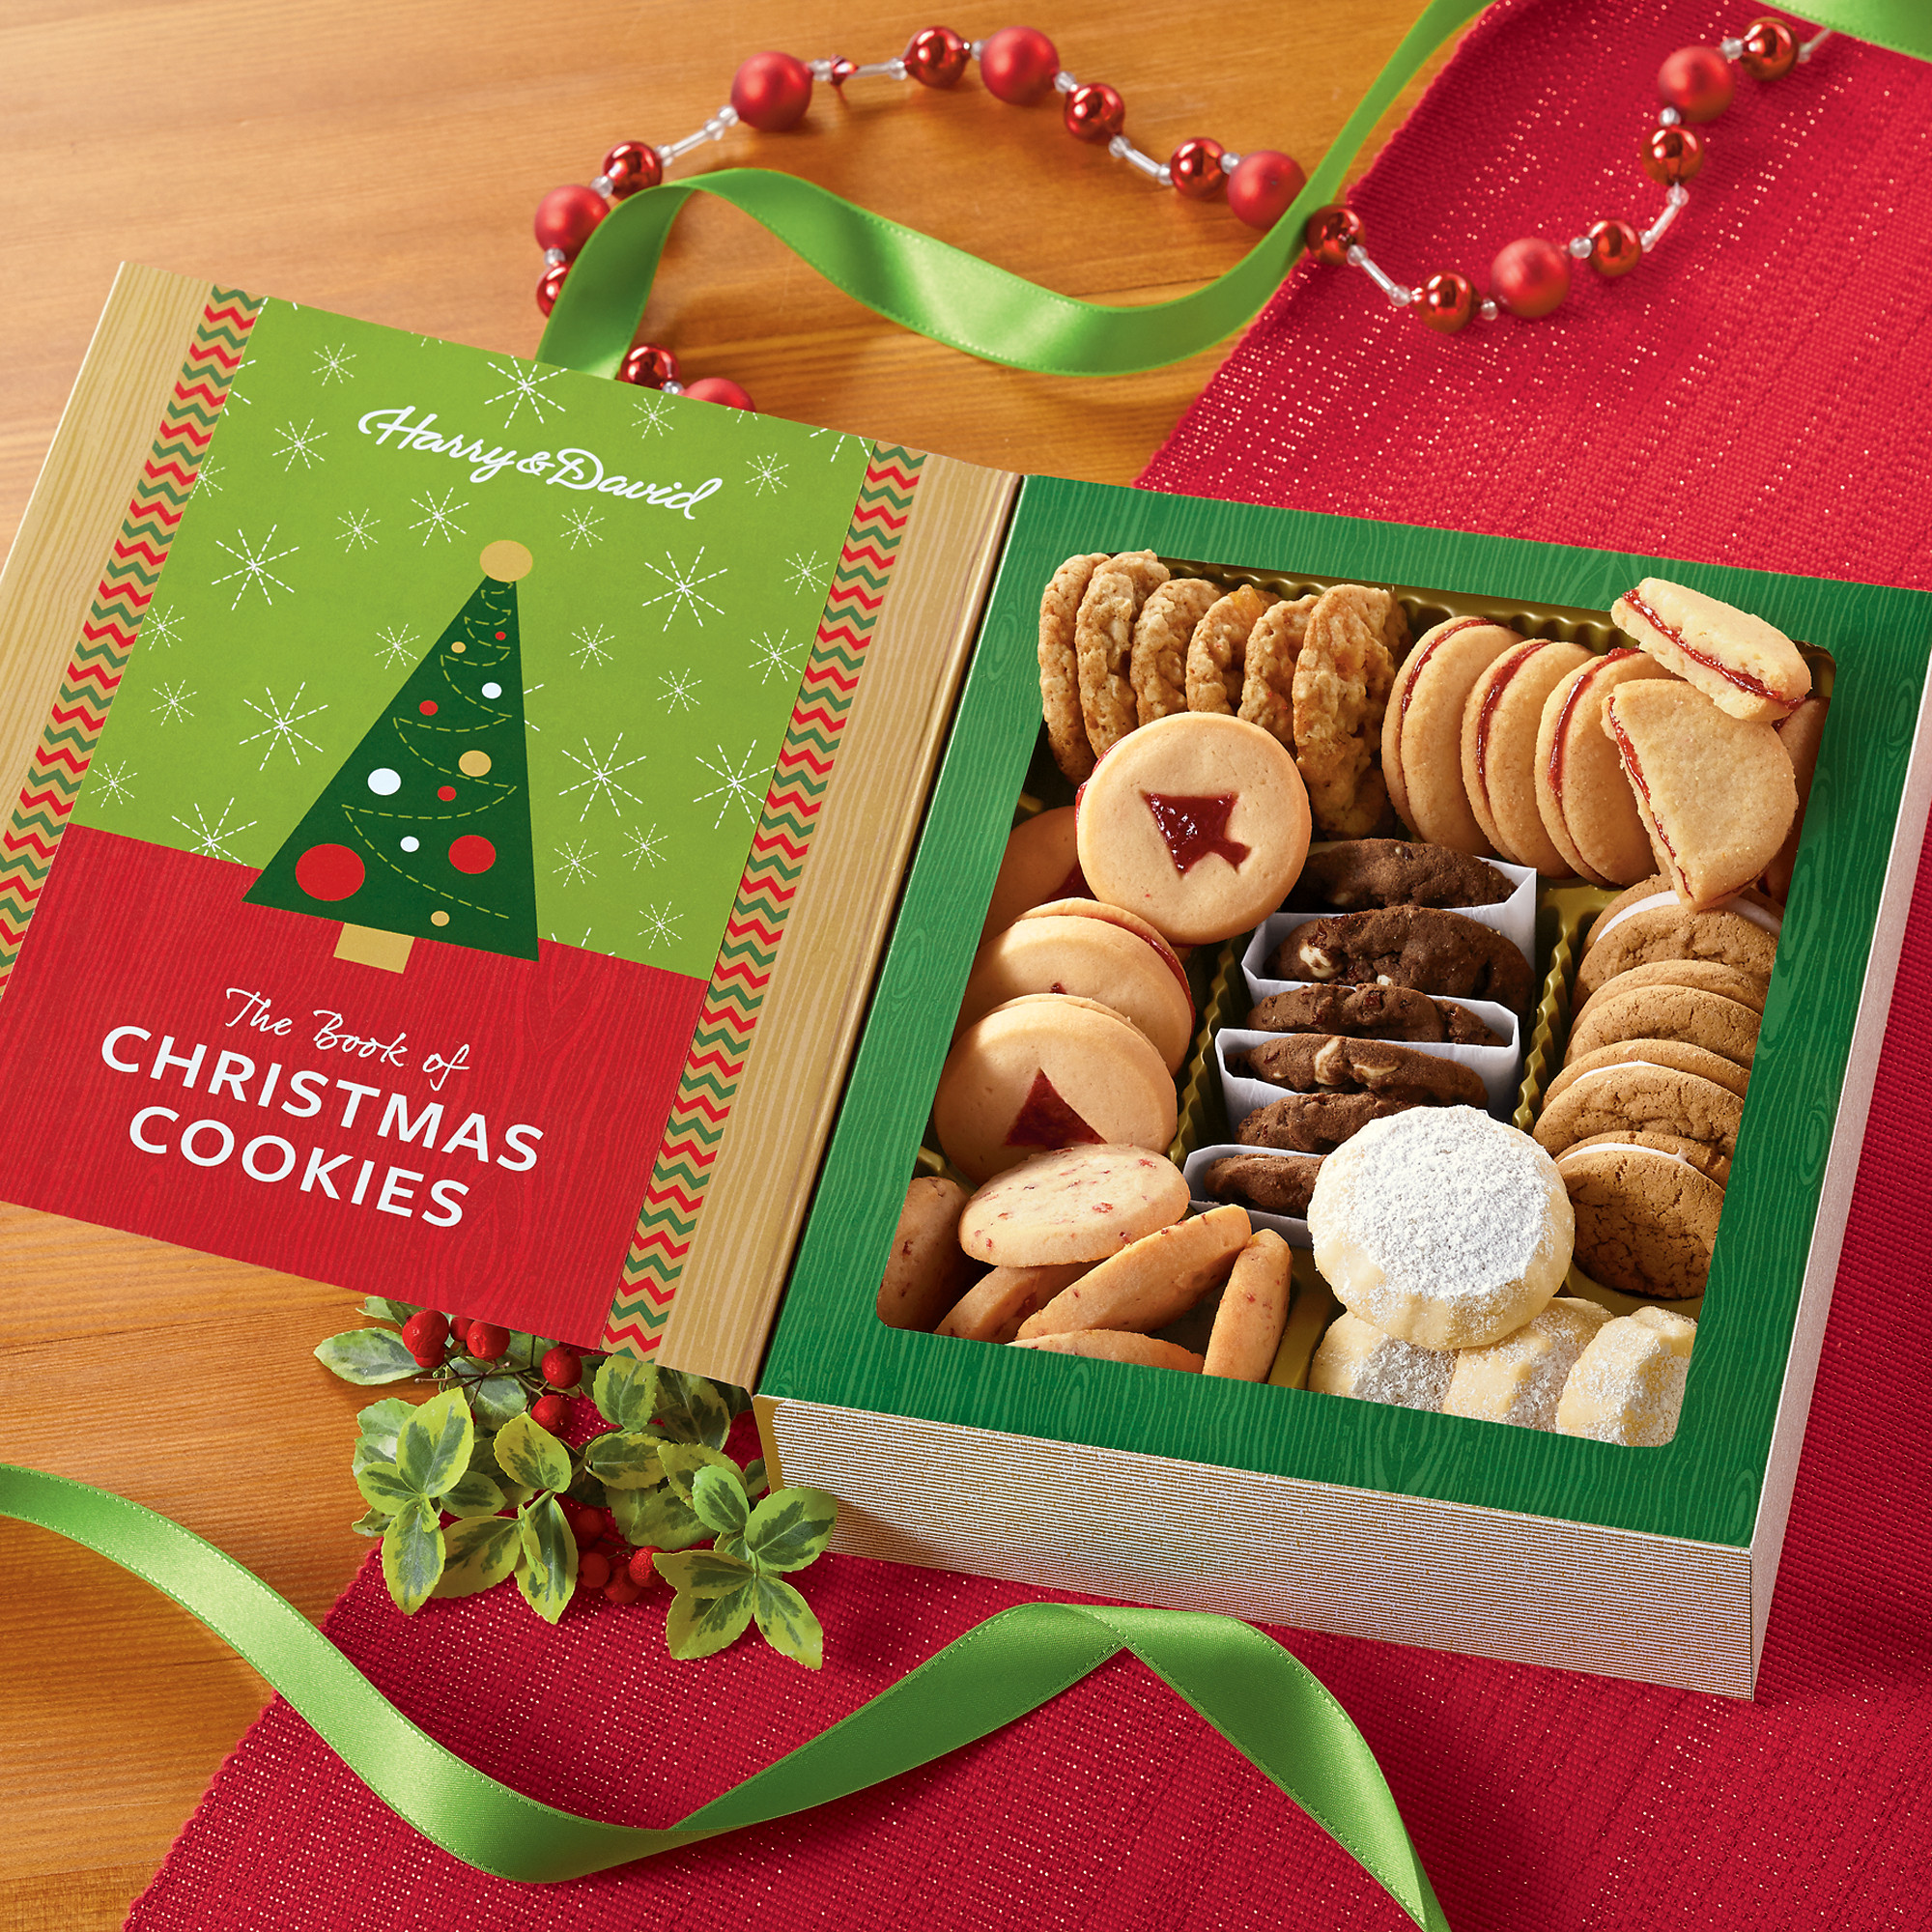 Christmas Cookies Delivered  The Book of Christmas Cookies